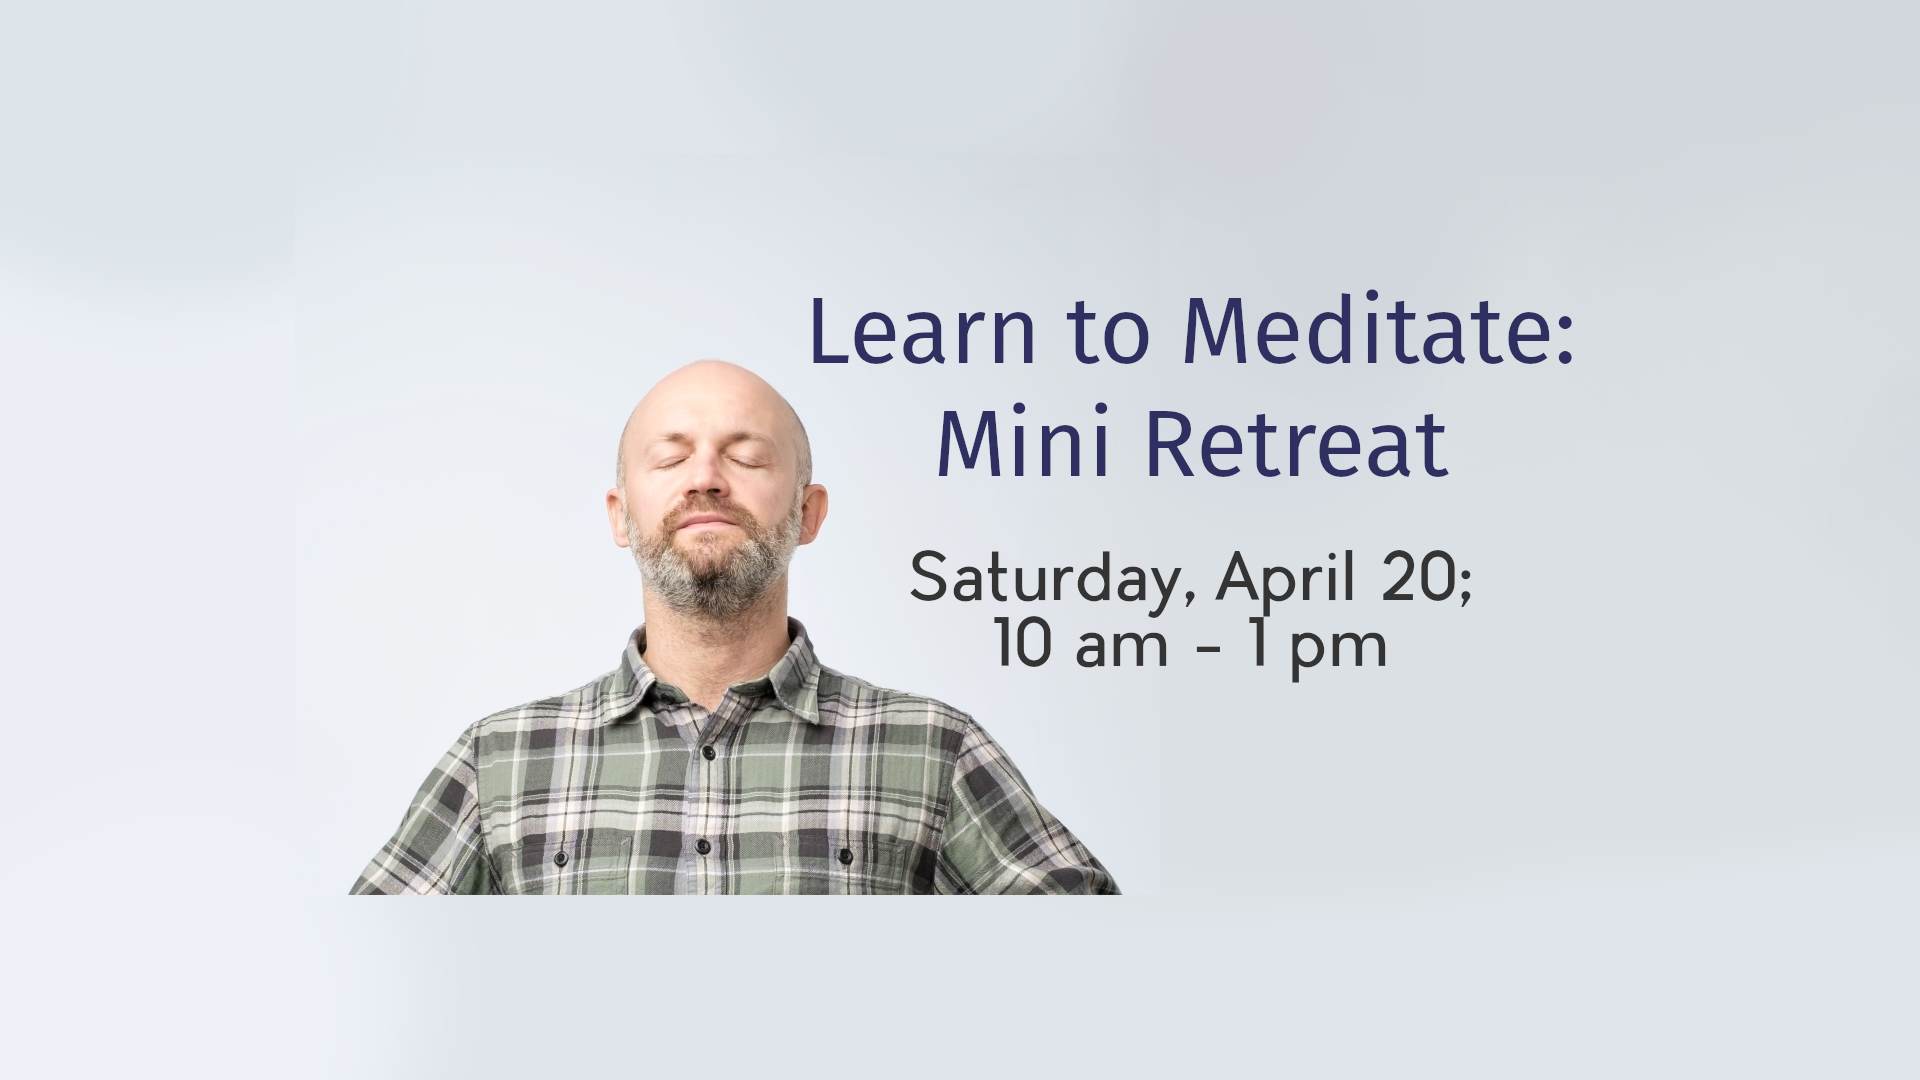 Learn to Meditate: Mini Retreat